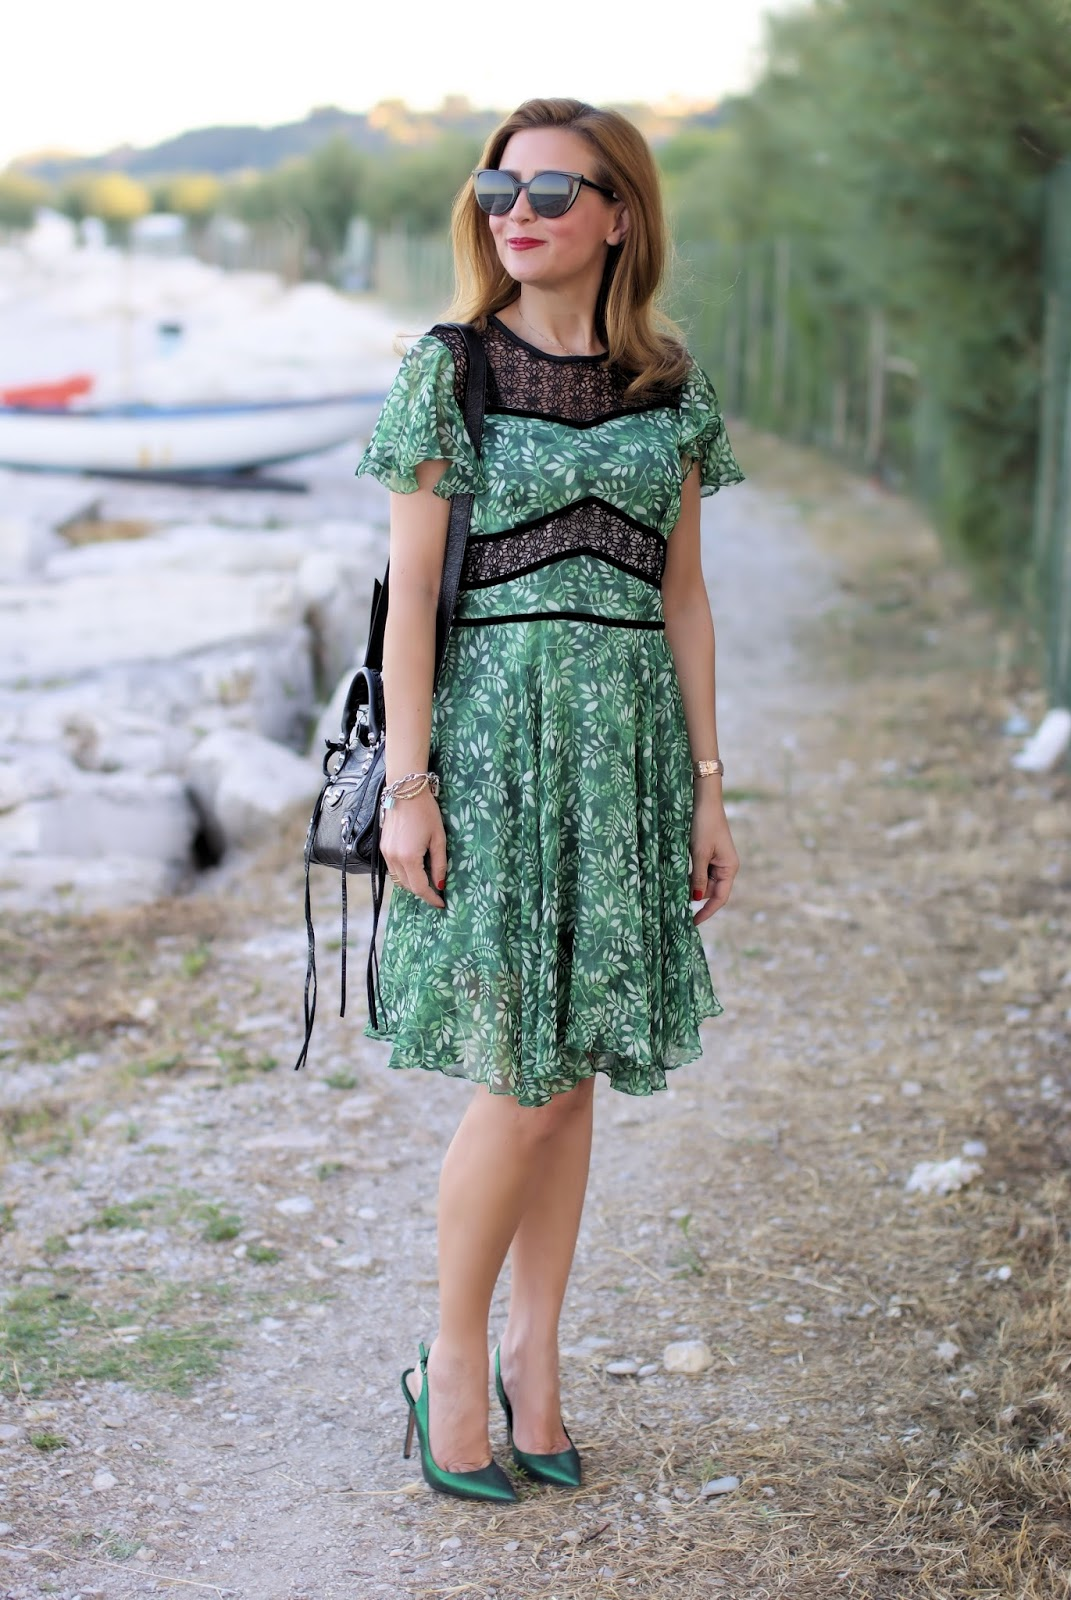 Green floral dress and Balenciaga mini bag on Fashion and Cookies fashion blog, fashion blogger style